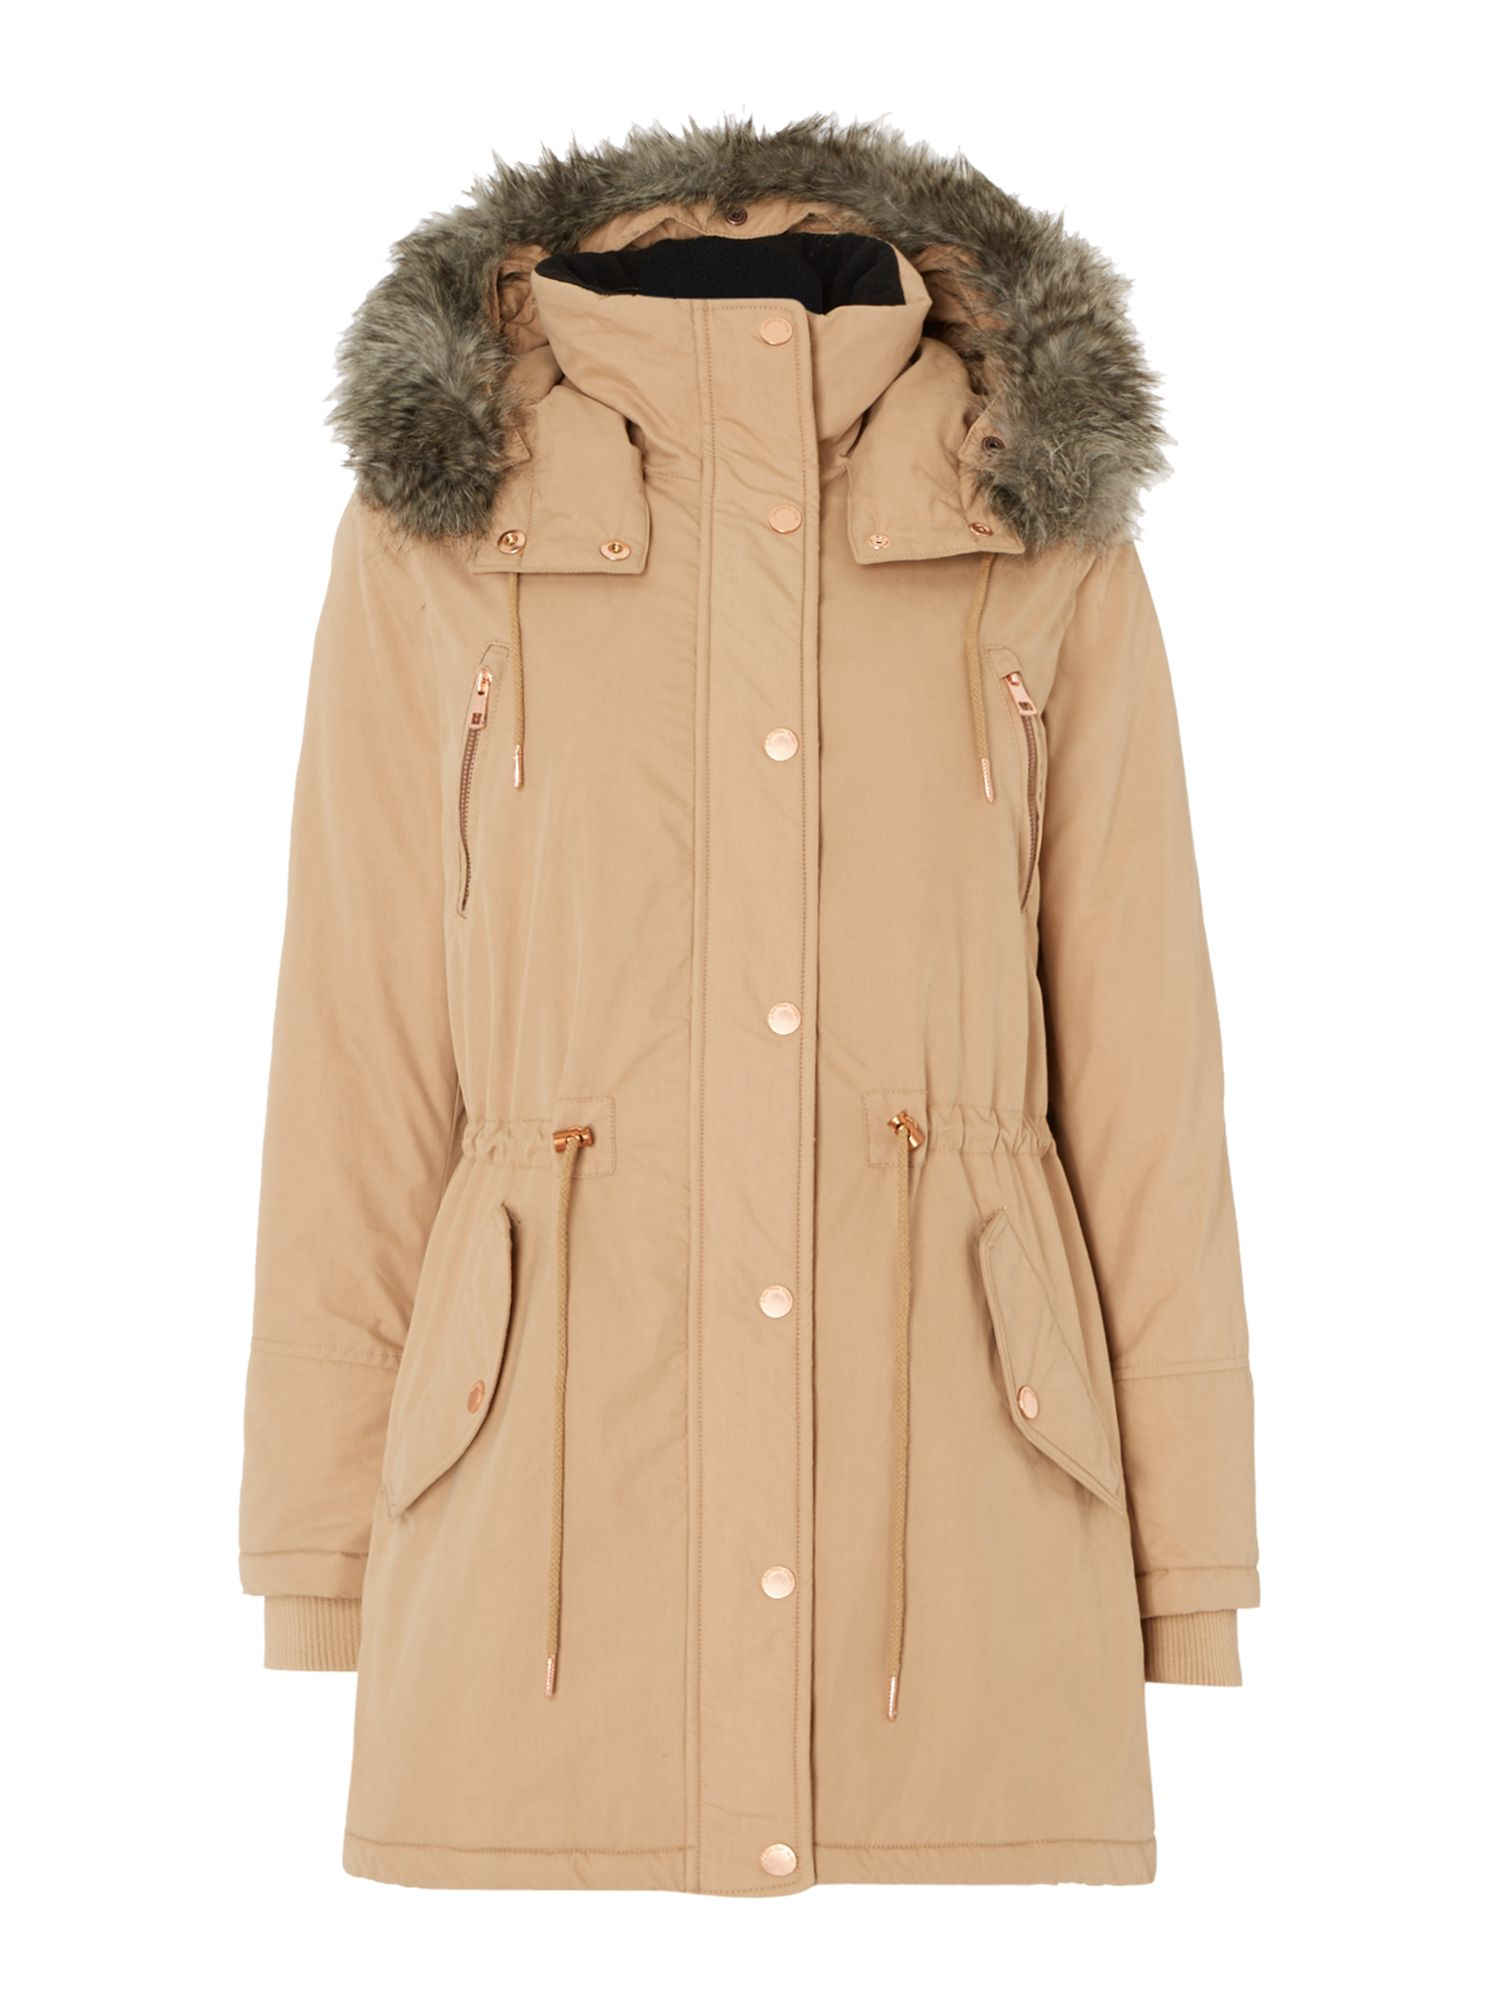 Calvin Klein Ottaline Padded Faux Fur Lined Hooded Coat, Camel